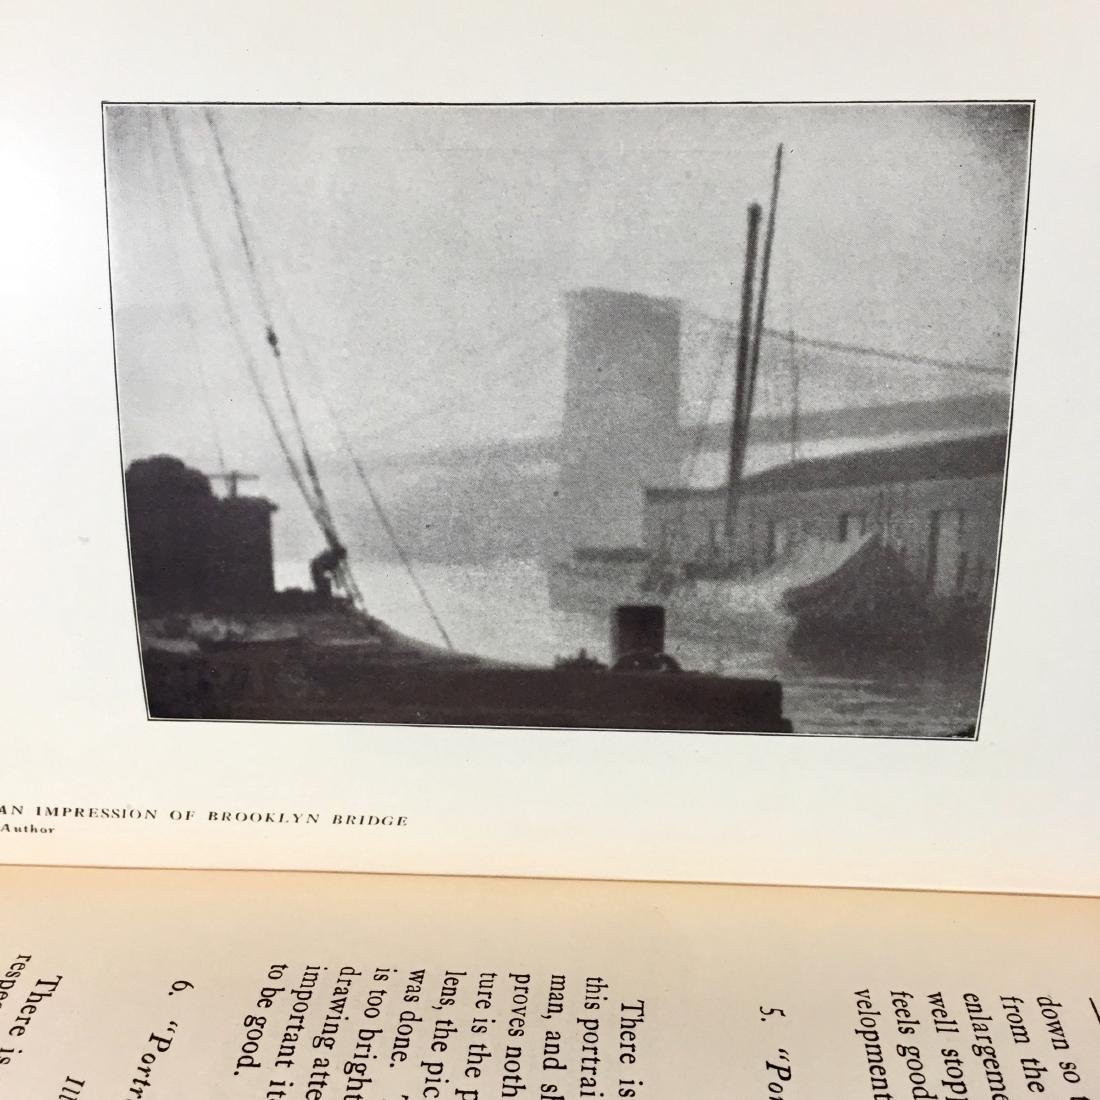 Principles Pictorial Photography Gillies First Edition - 6